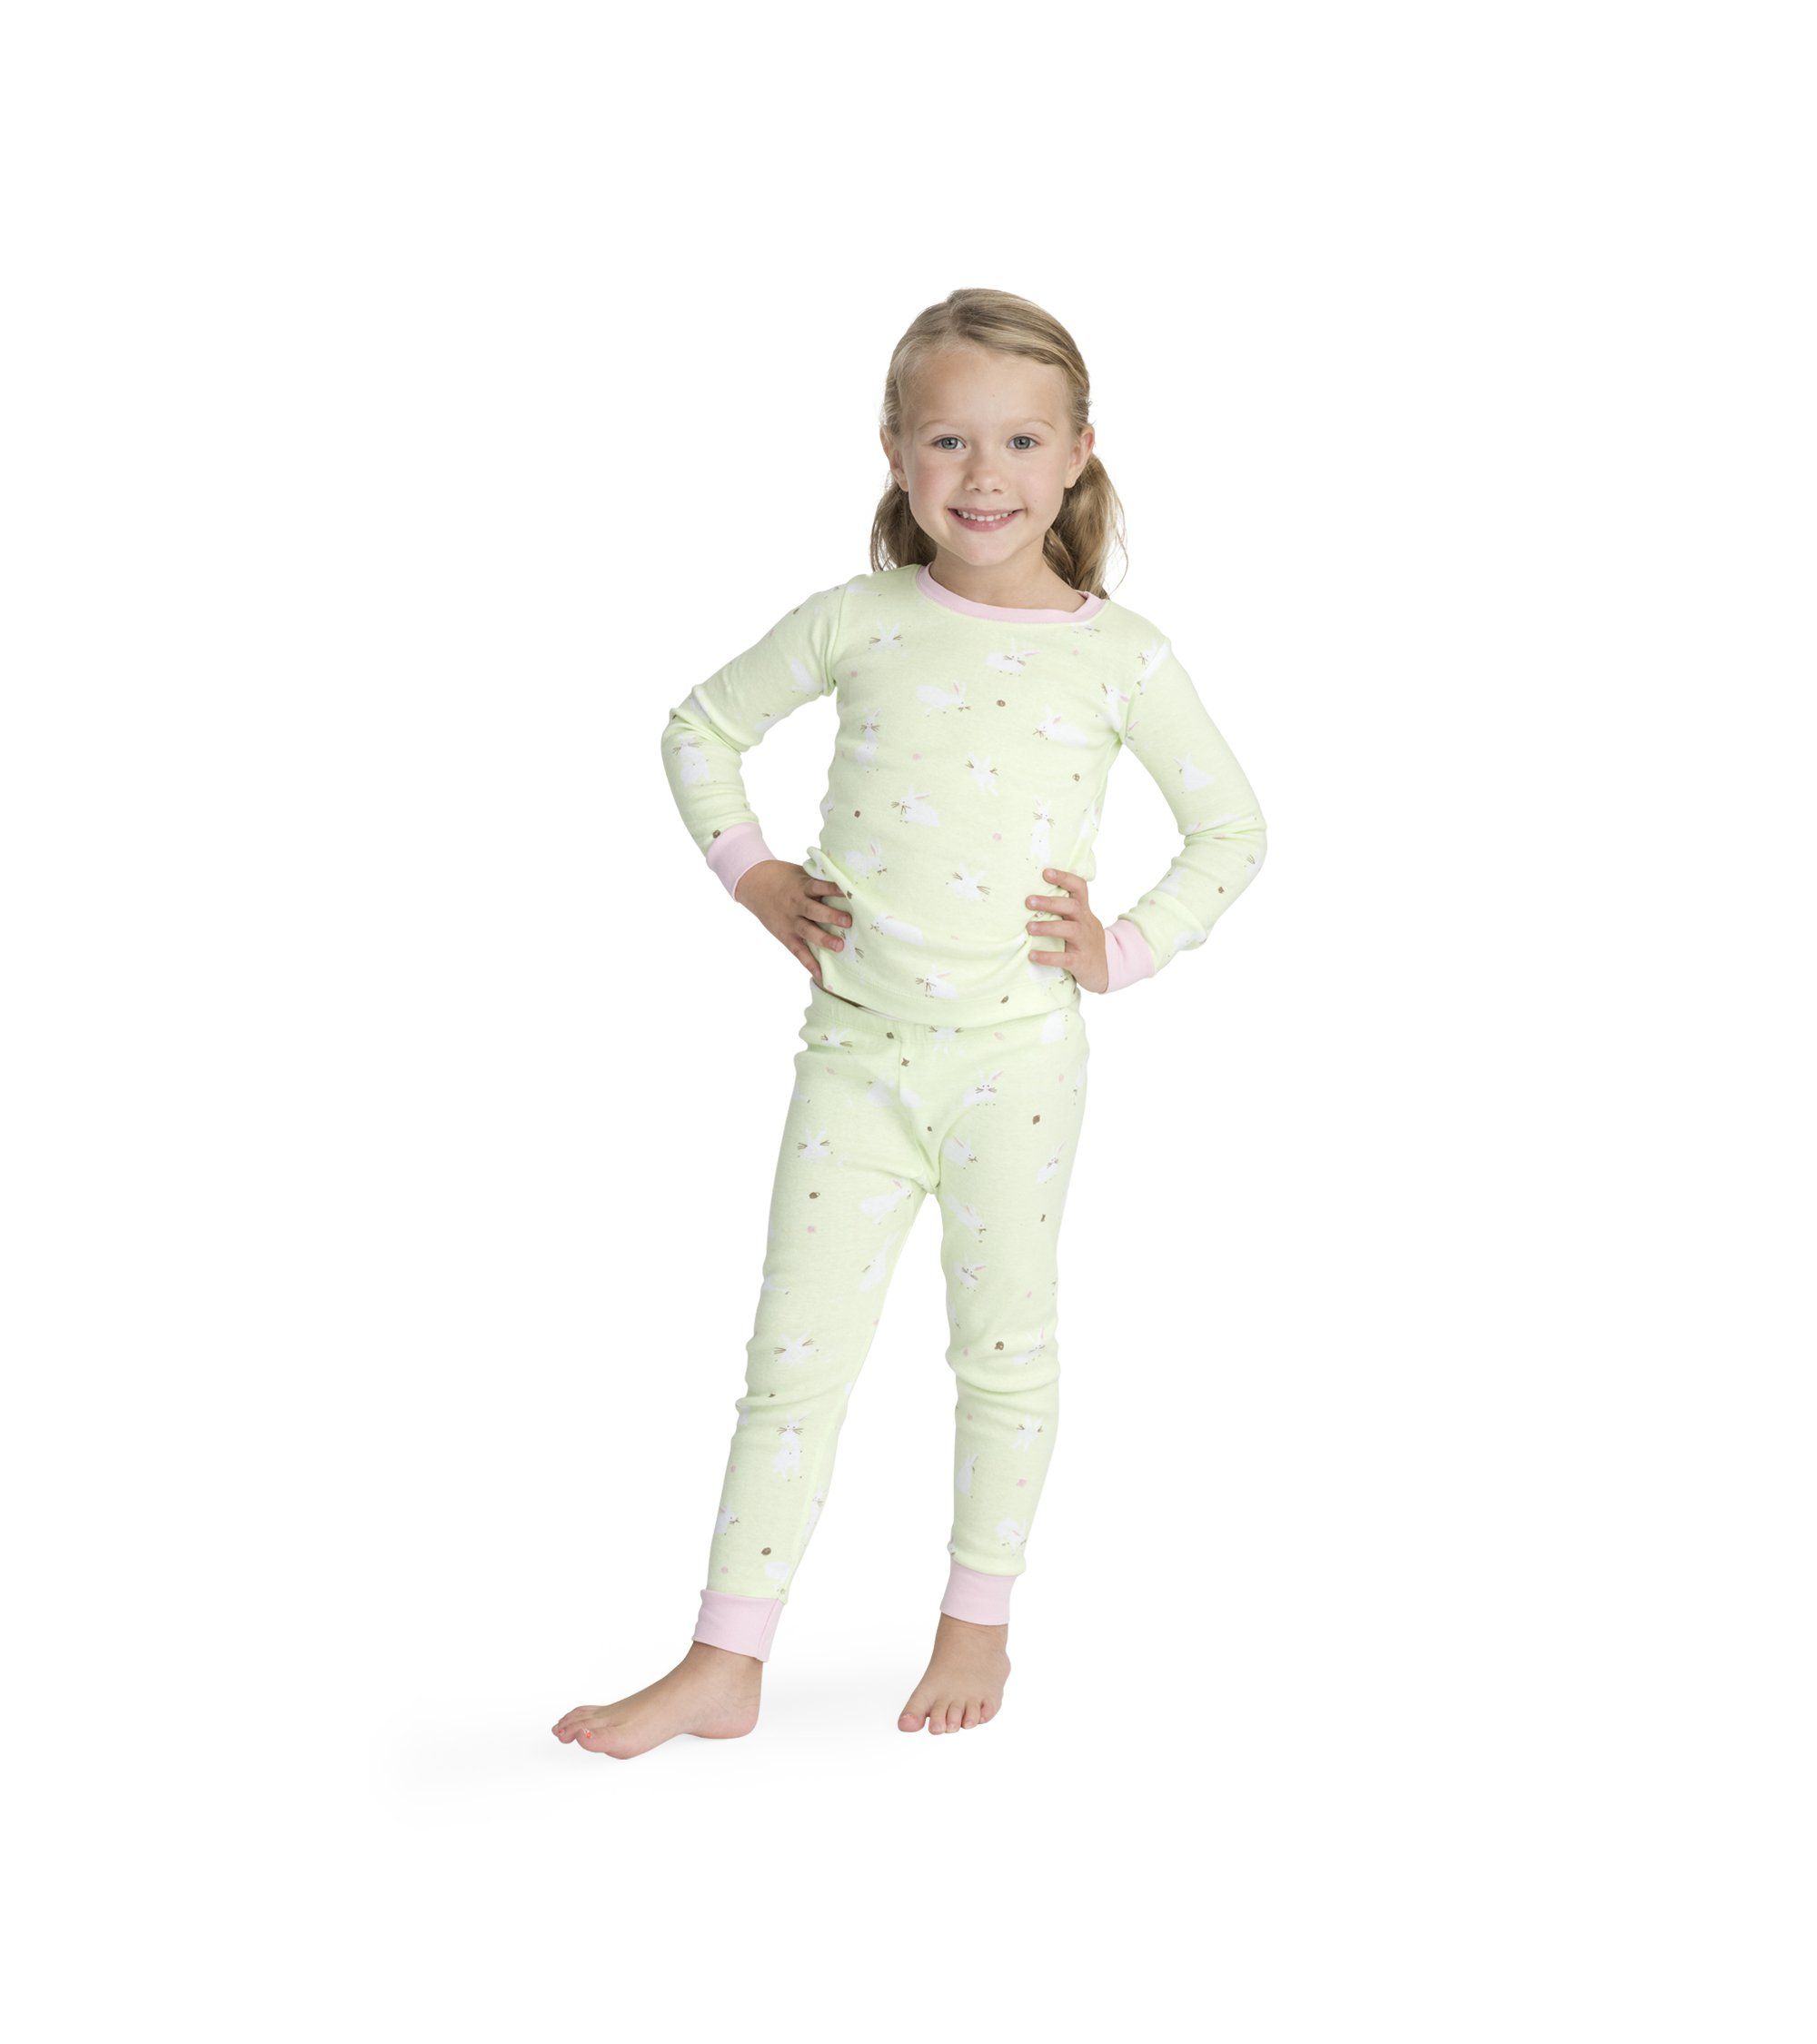 11d3be0e34660b Galleon - Hatley Girls' Little Organic Cotton Long Sleeve Printed Pajama  Sets, Thumping Bunnies, 4 Years